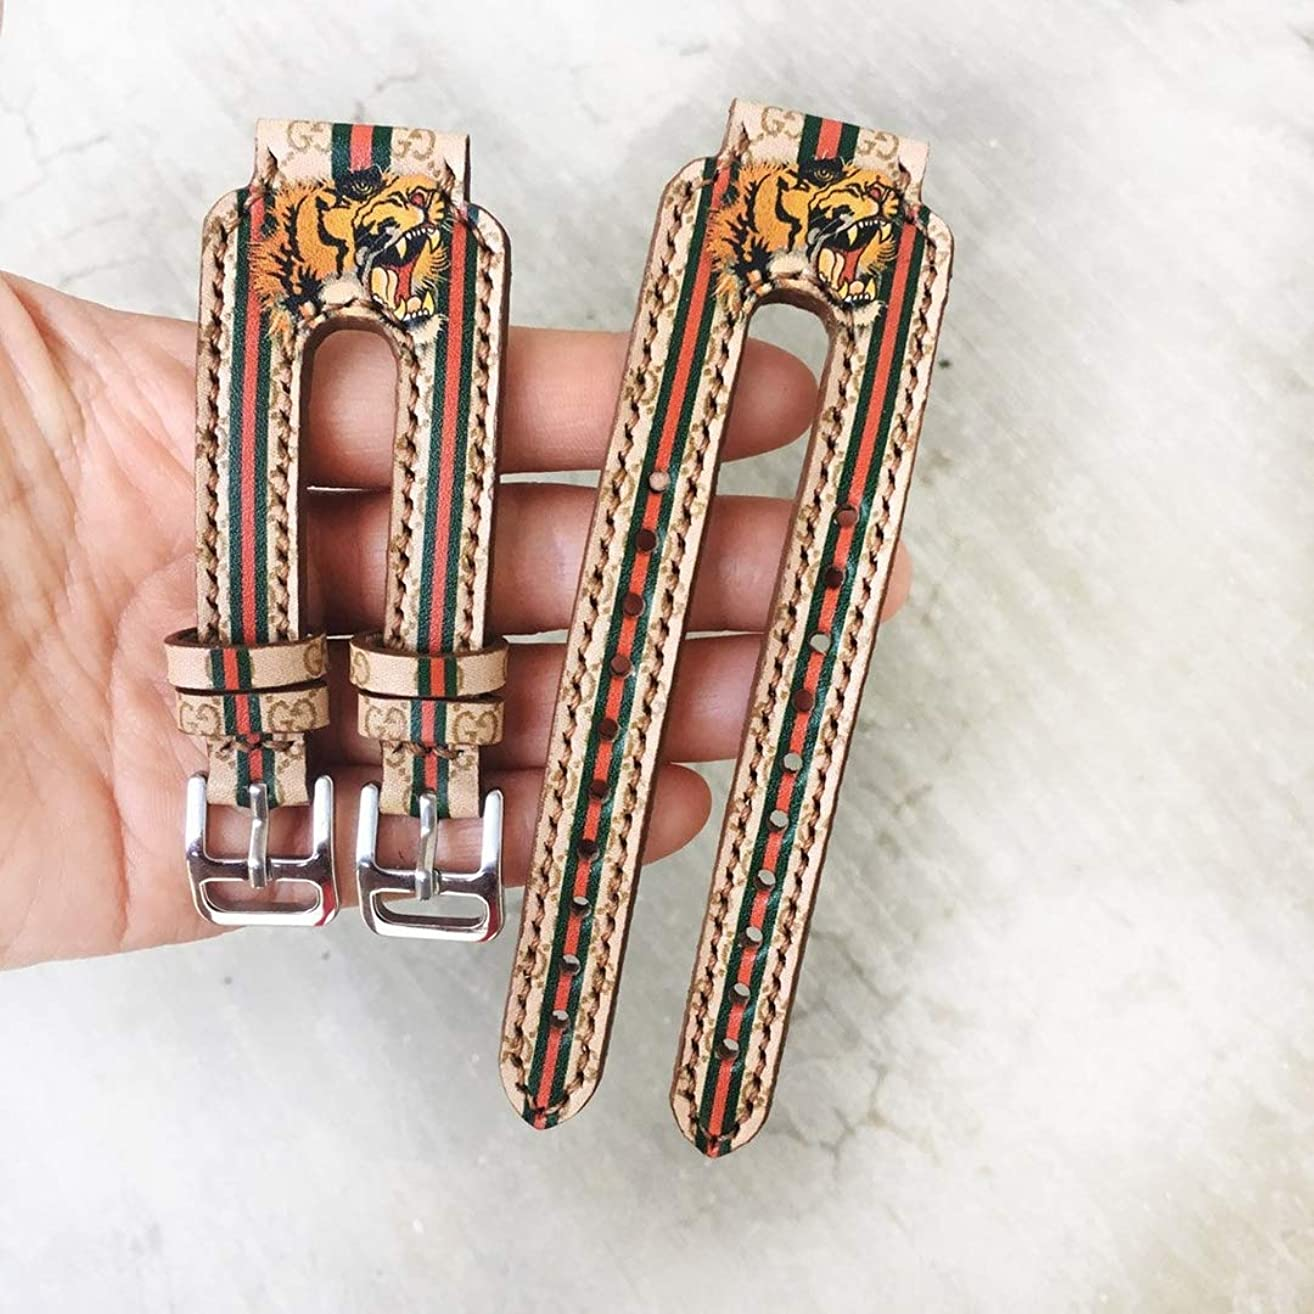 G*cci Monogram Tiger Double Cuff Leather Apple iWatch Band. Series 1, 2, 3, 4 for 38mm - 44mm HandMade by - DesignerBomb.